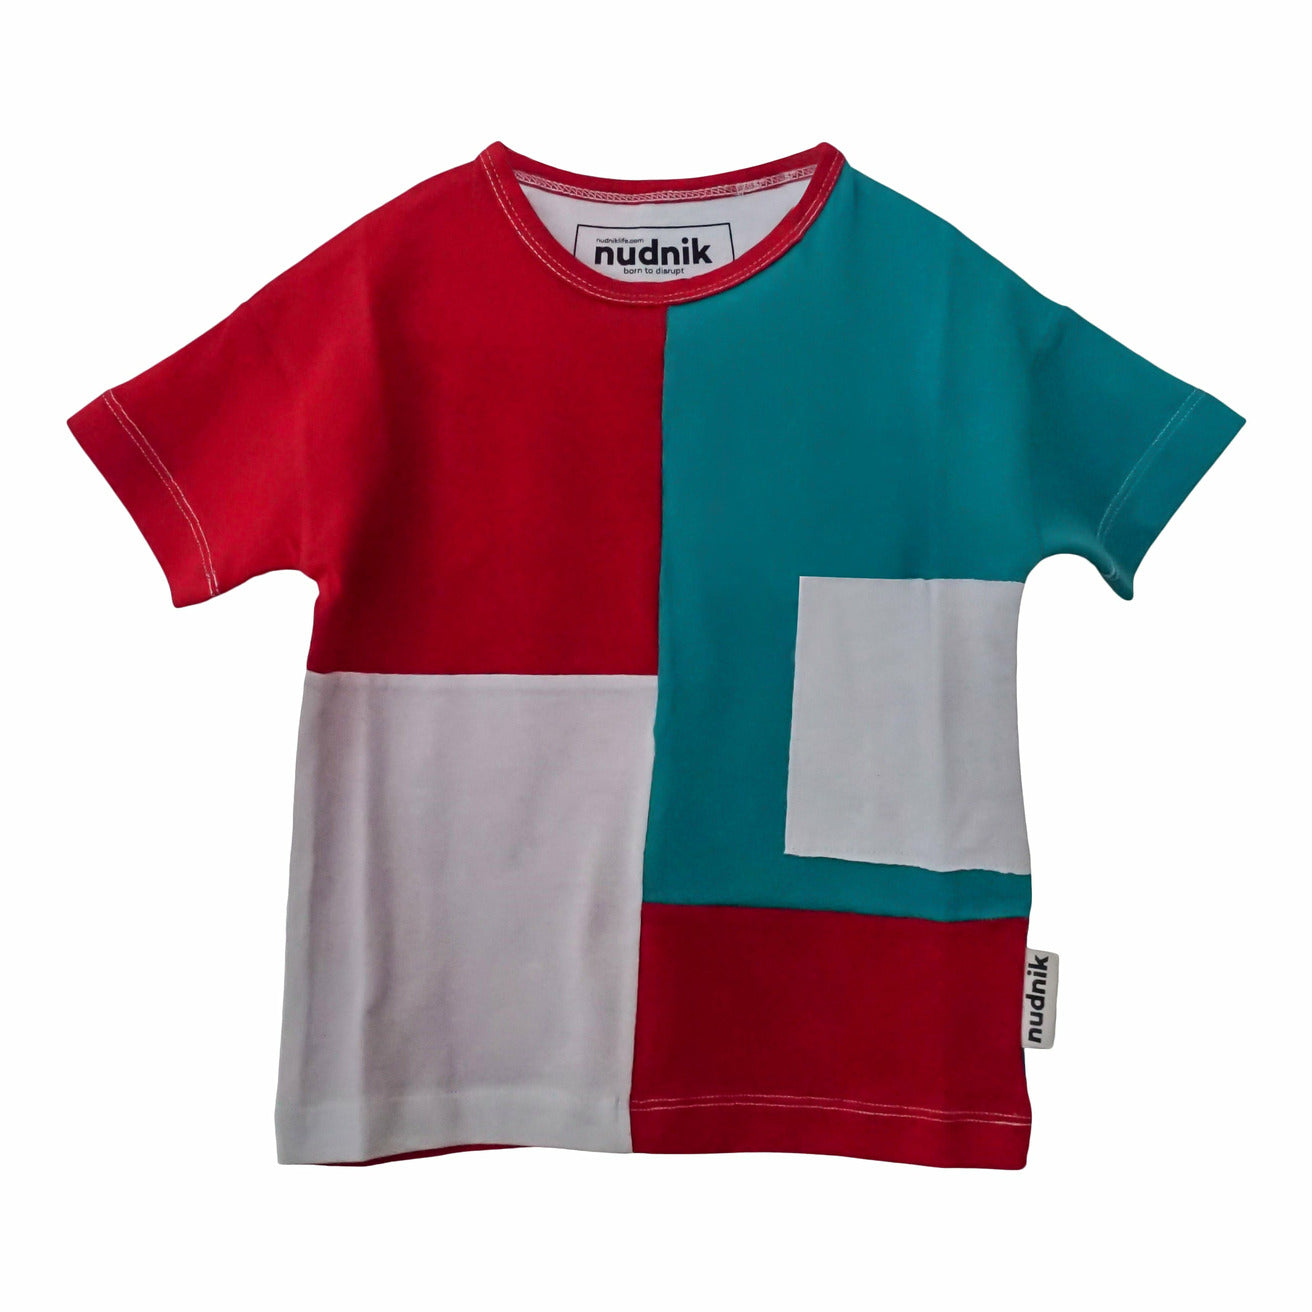 DISRUPTOR TEE in Roaring Red + Treat Teal - NUDNIK